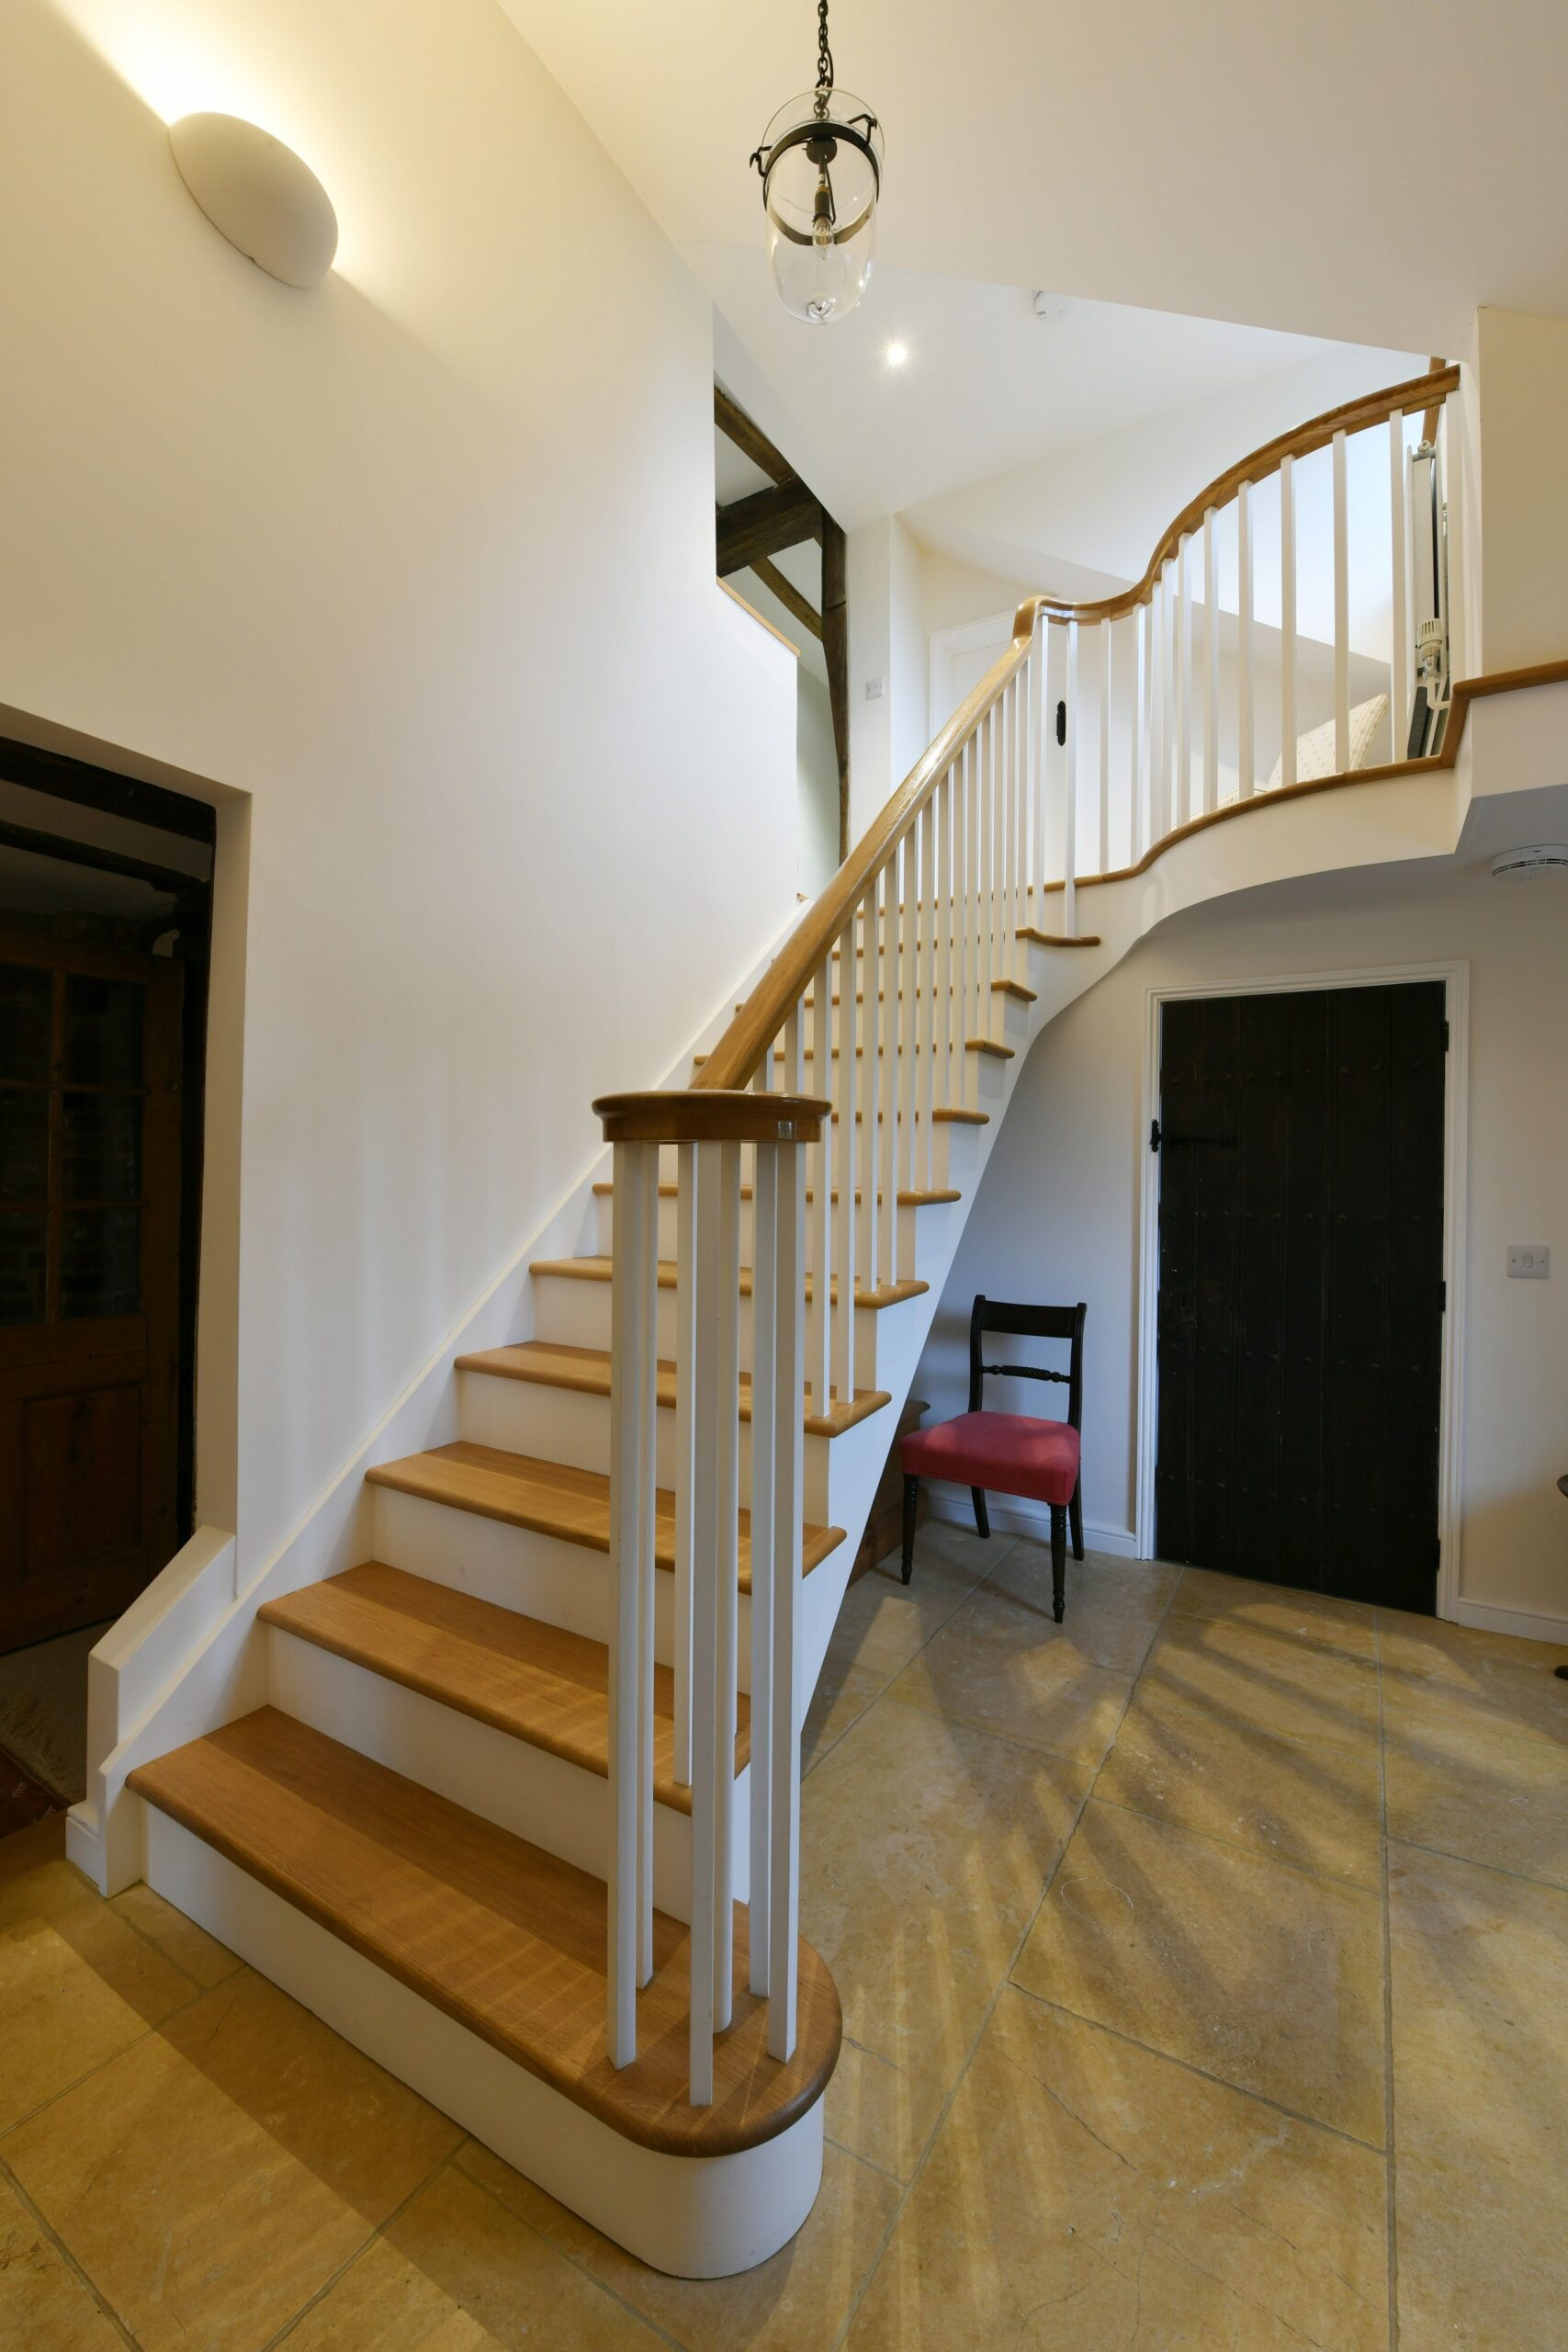 Grand staircase with spindles